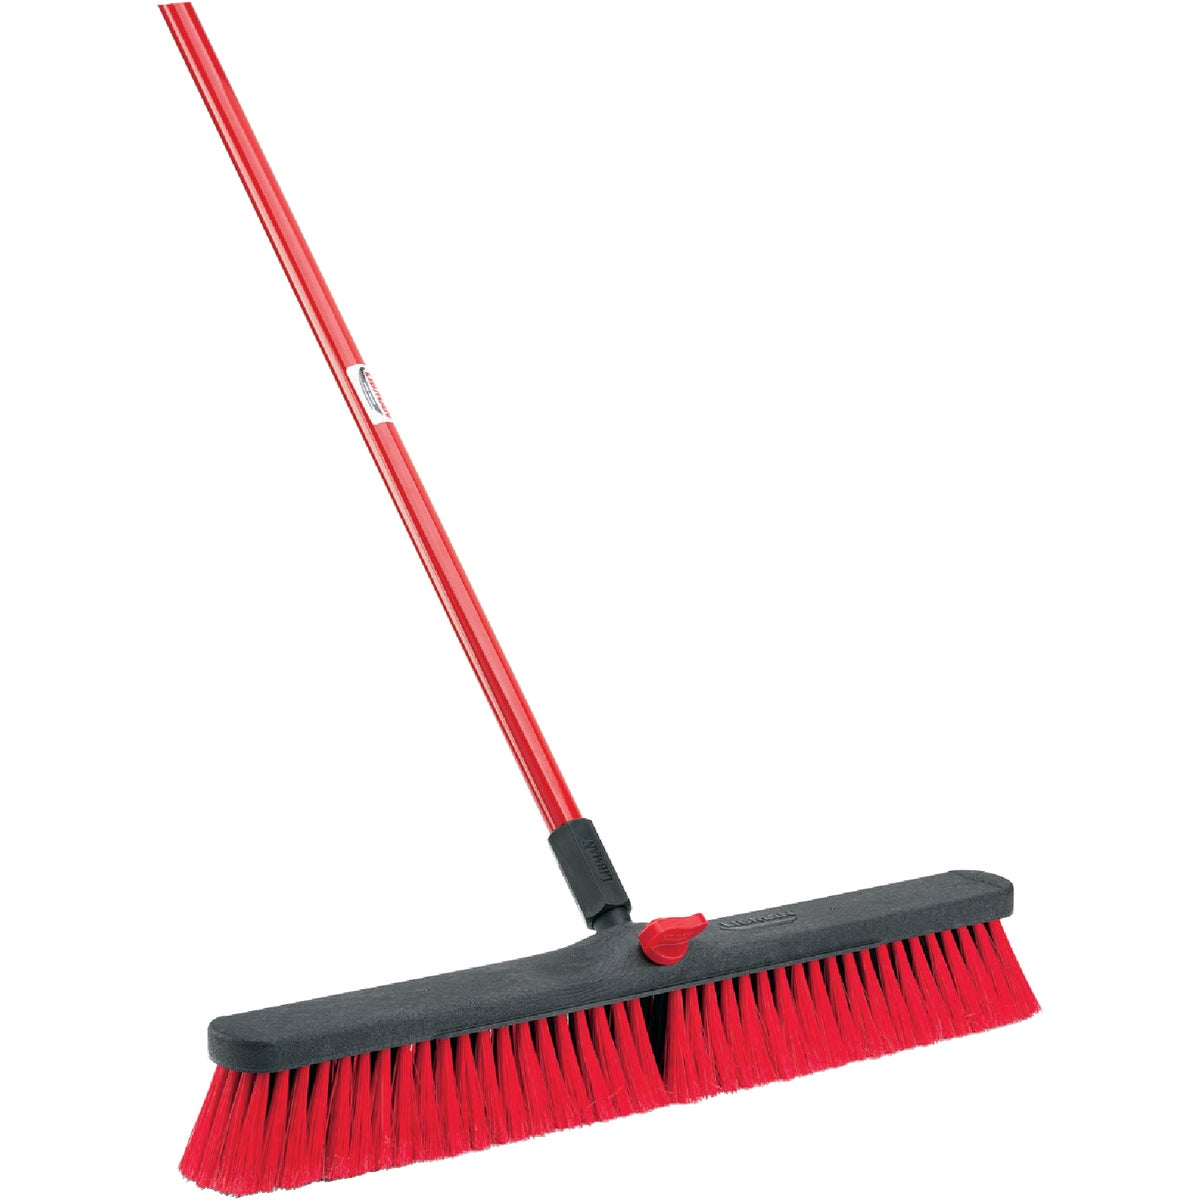 "24"" WIDE PUSH BROOM - 124954 by F H P-lp"